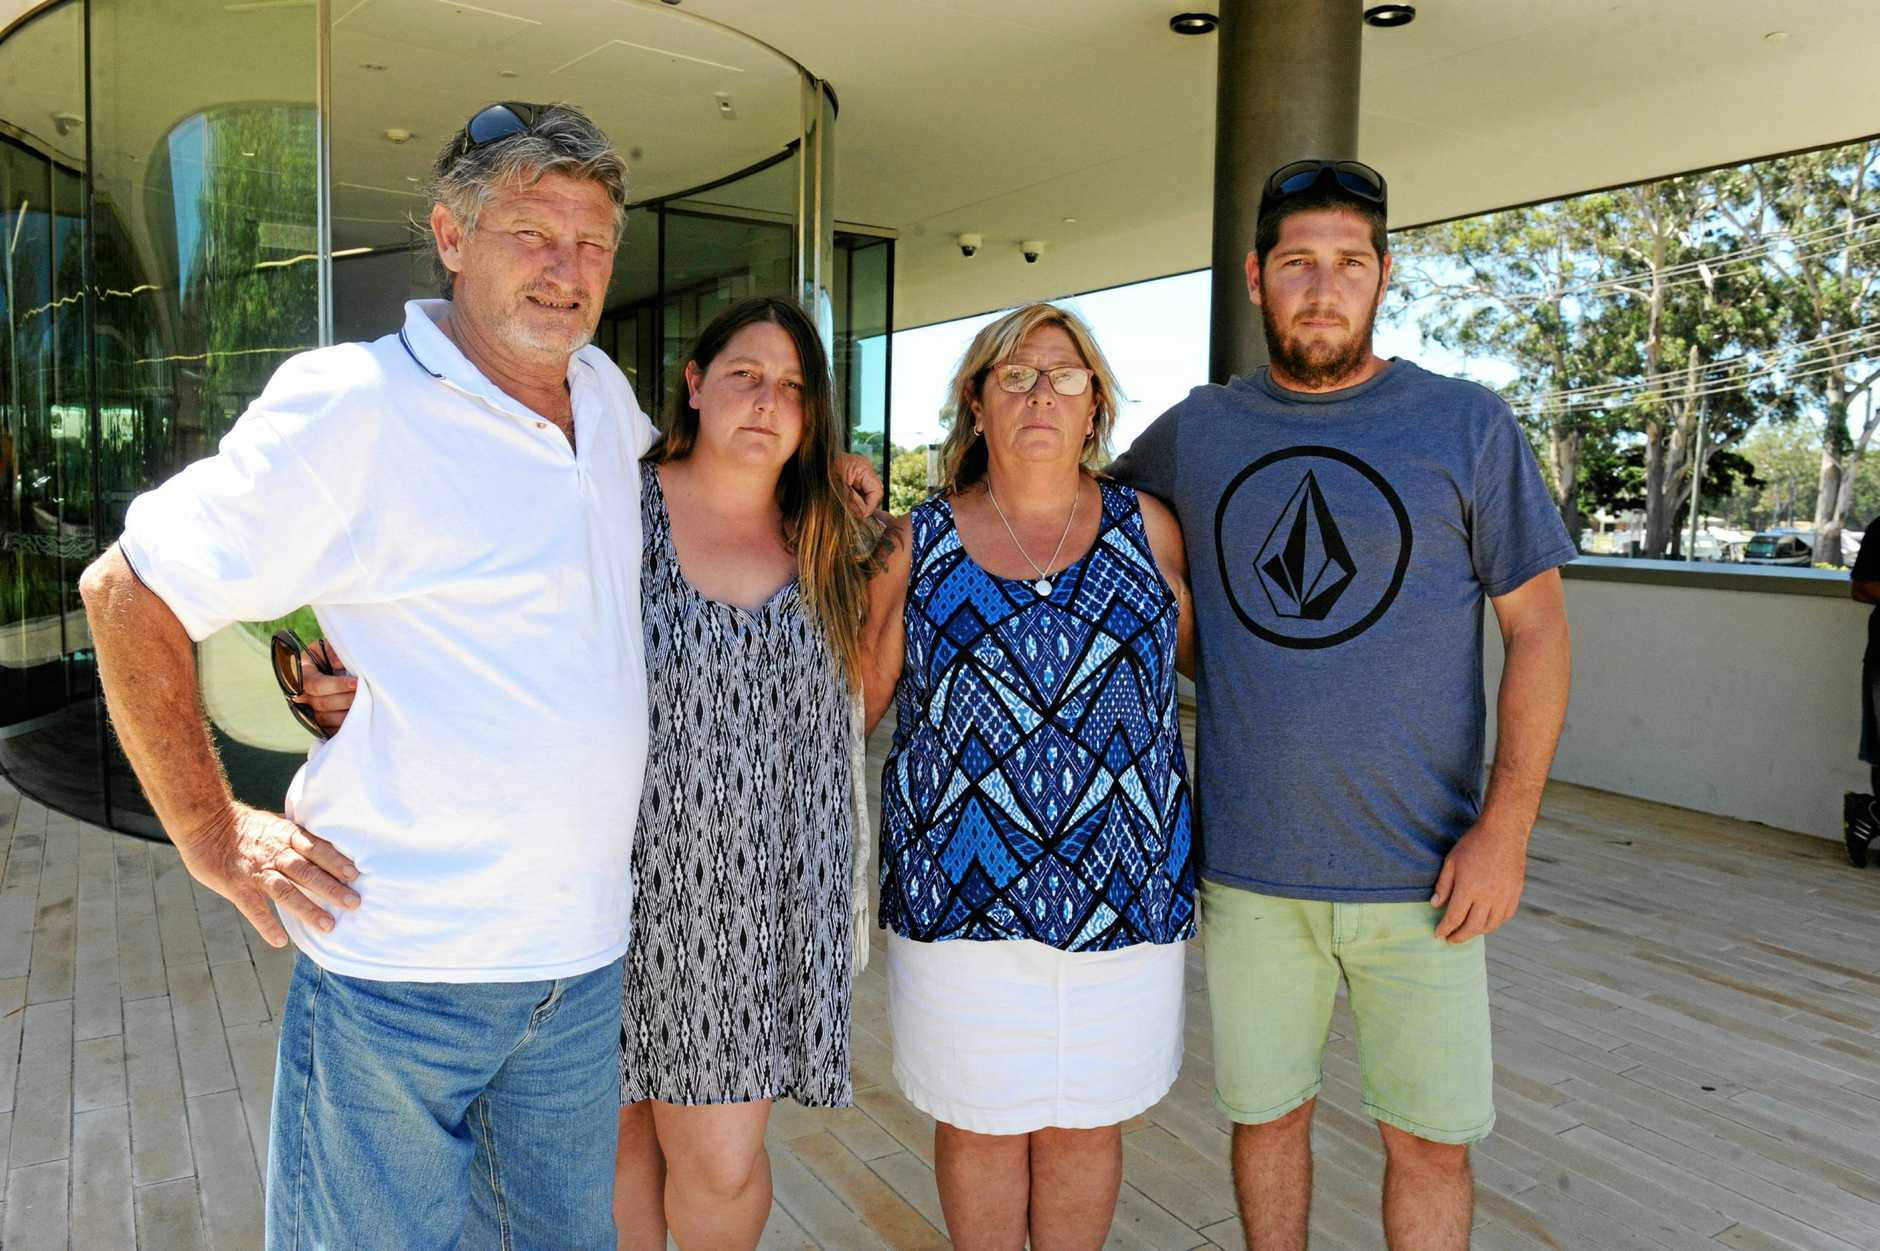 Family attend the coronial inquest into the death of Matthew Mitchell in 2017. Pictured are Matthew's father Peter, sister Alisha, mother Julie, and brother Rob.